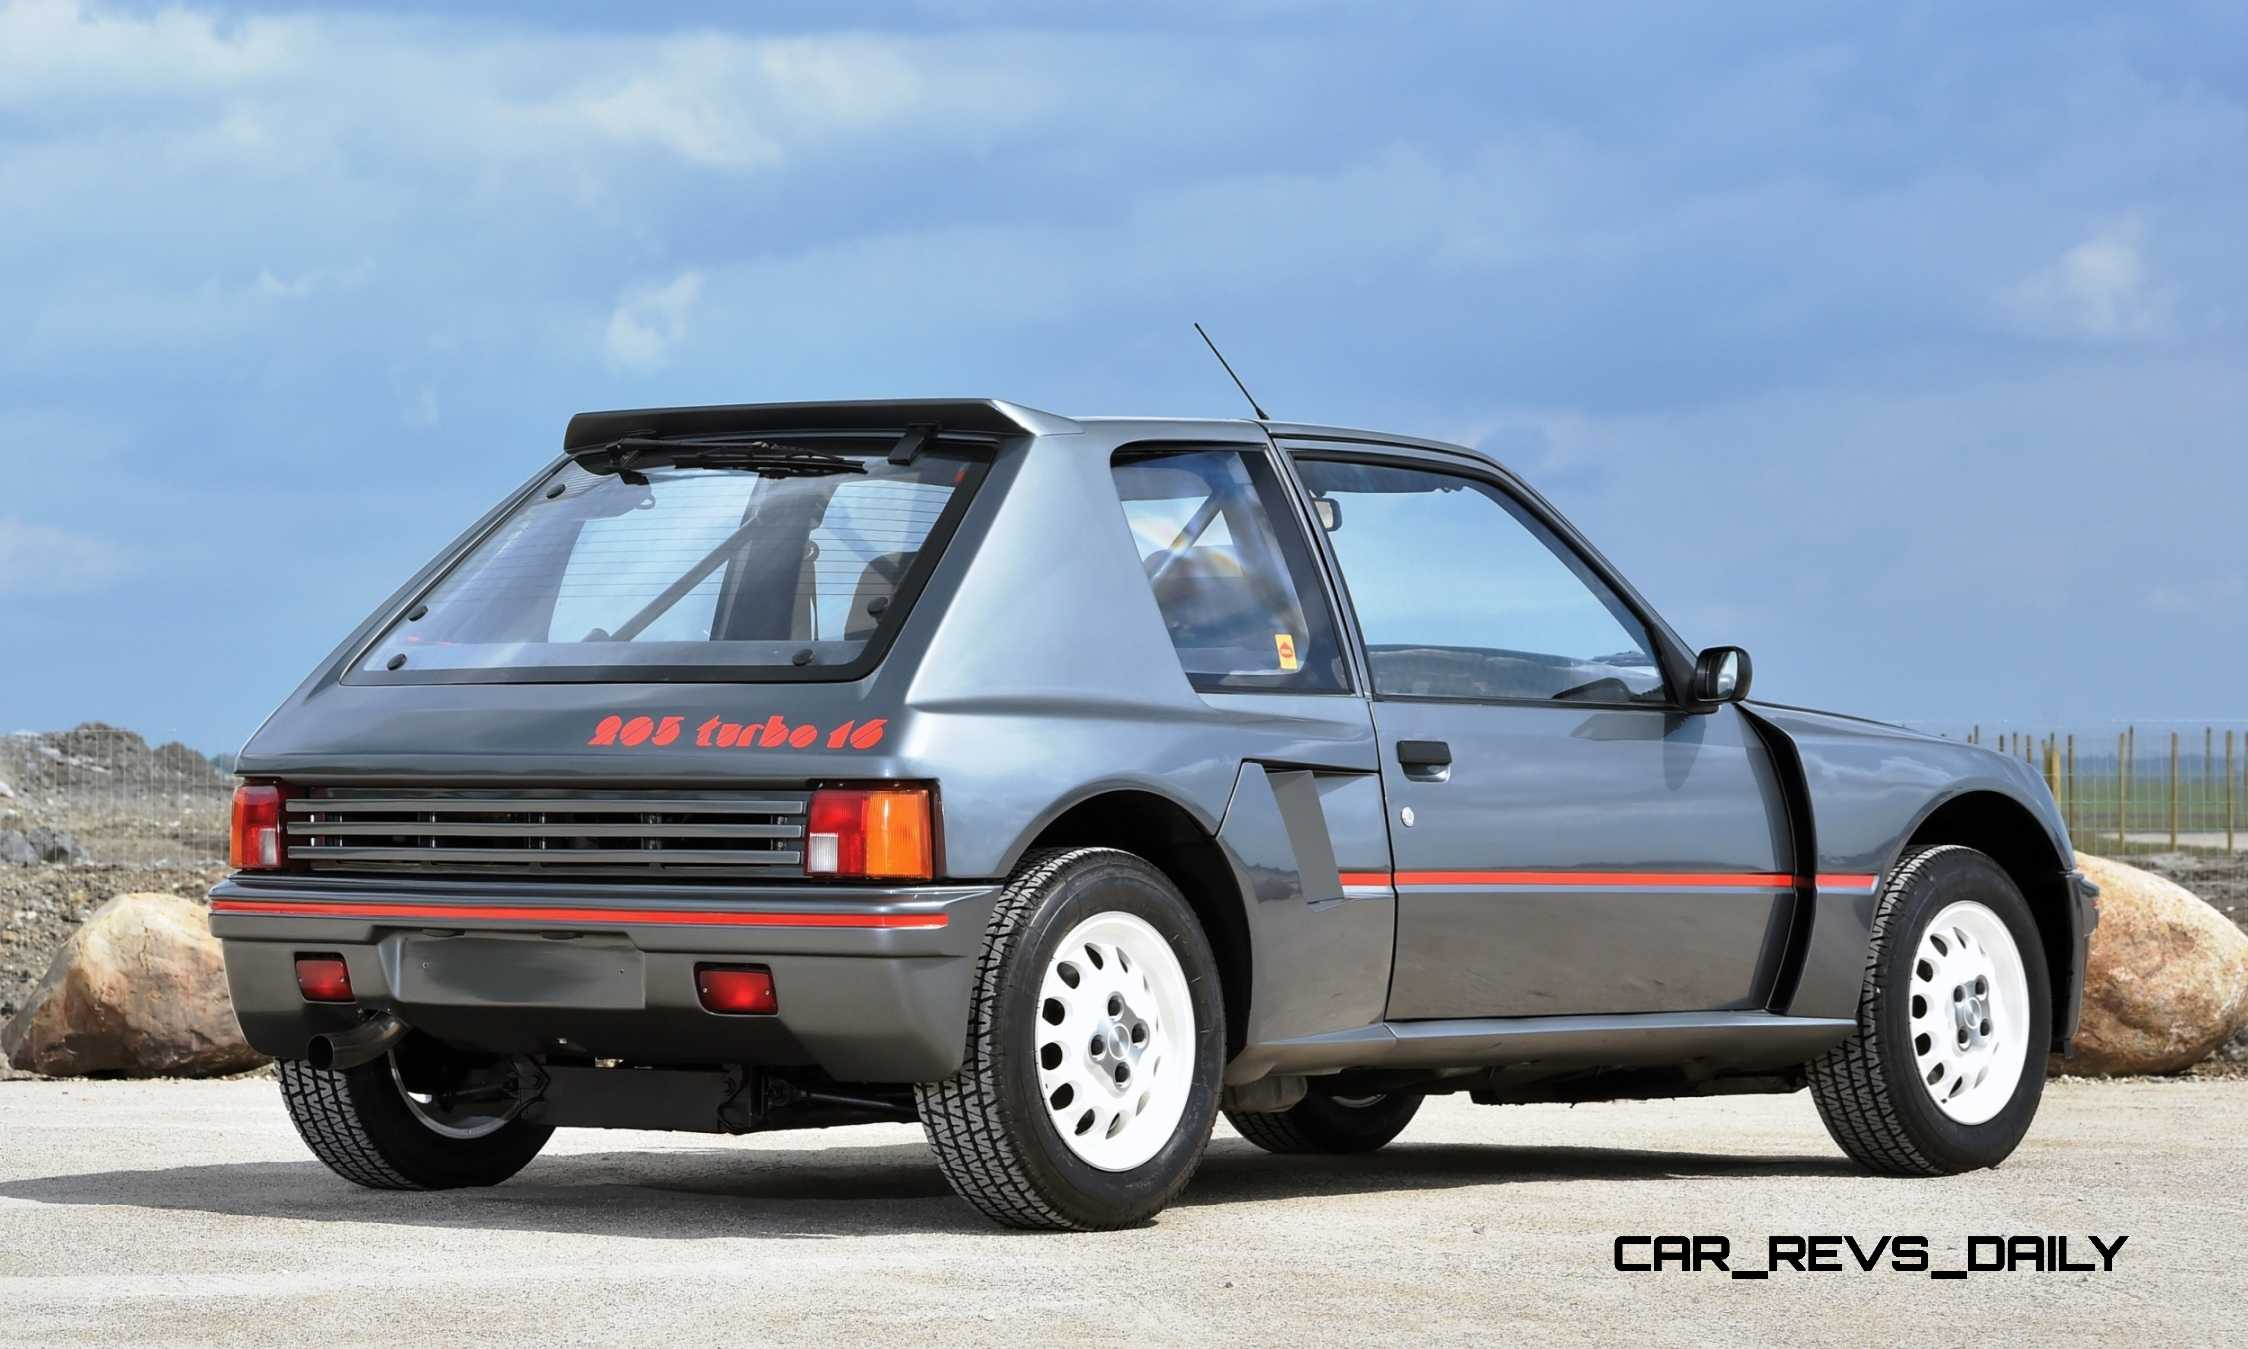 1984 Peugeot 205 Turbo 16 Is Most Valuable Post War Pug